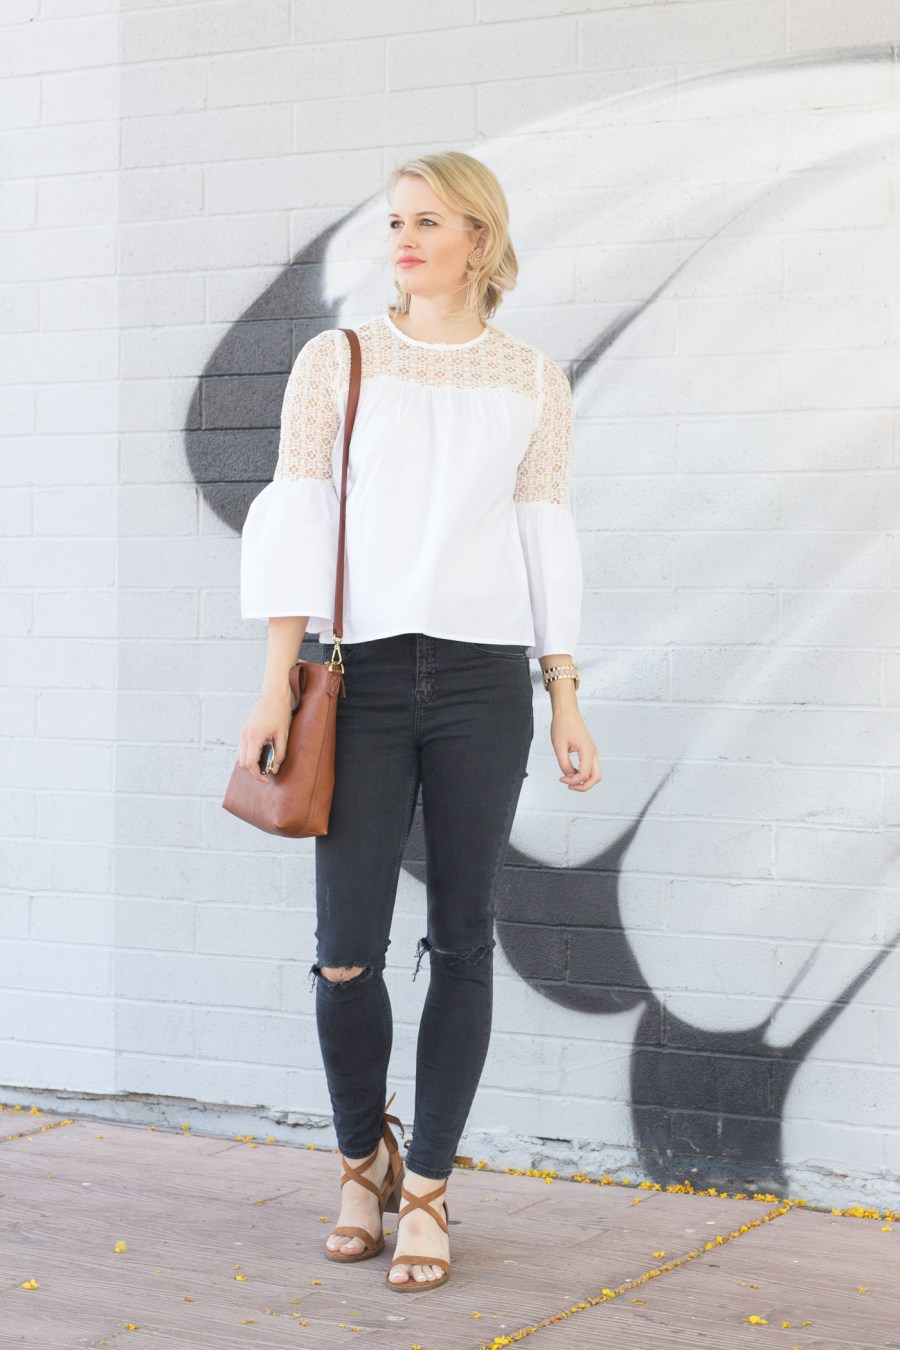 Bell Sleeves, Who What Wear Target top, spring outfit idea, fashion blog, Treats and Trends